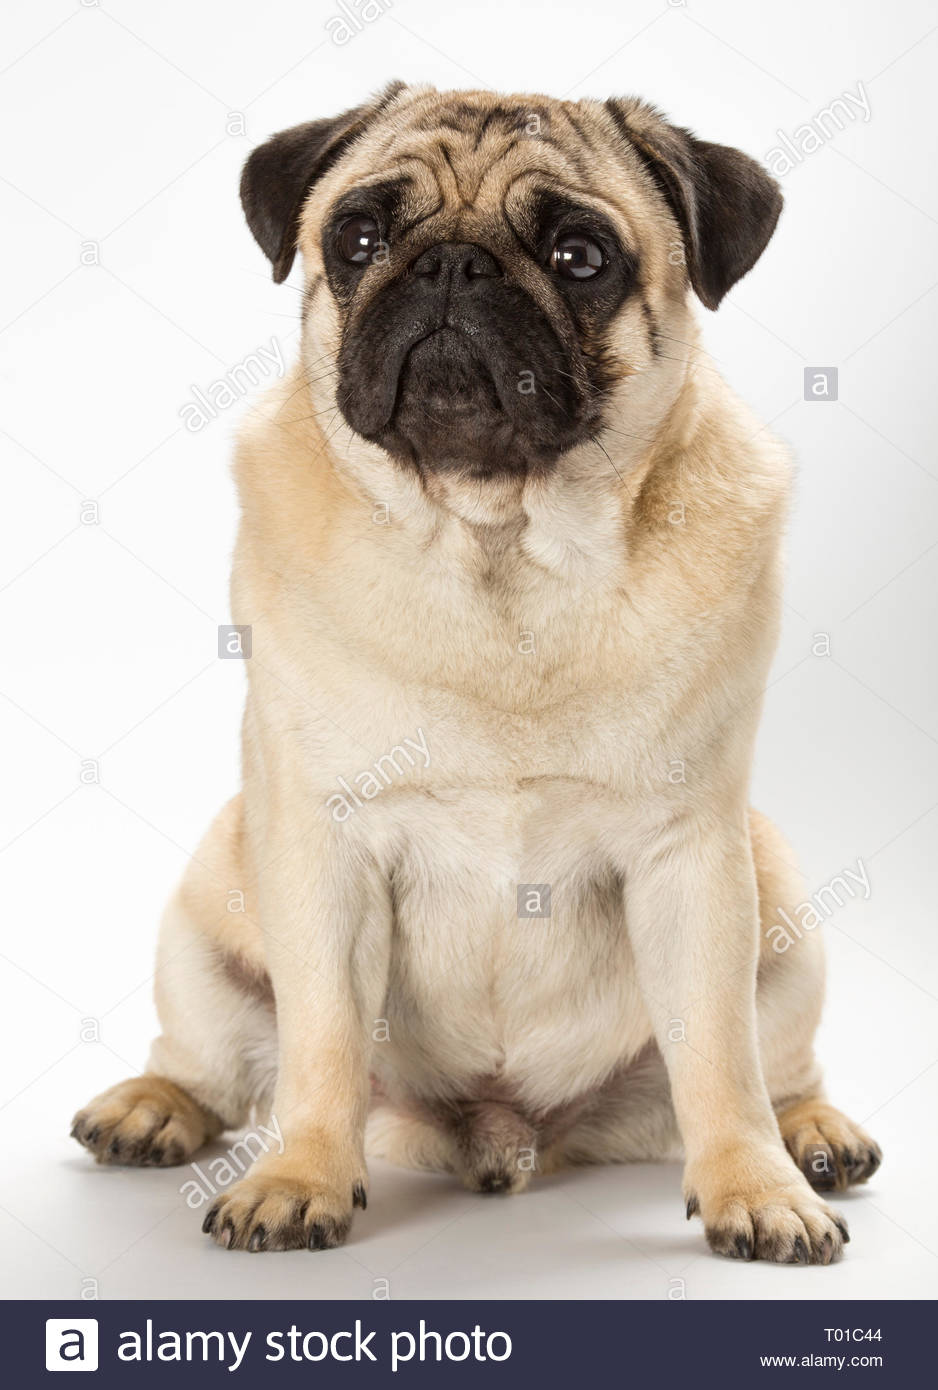 Pug dog breed, fawn colour. This dog breed originated in China around 2500 years ago. Stock Photo